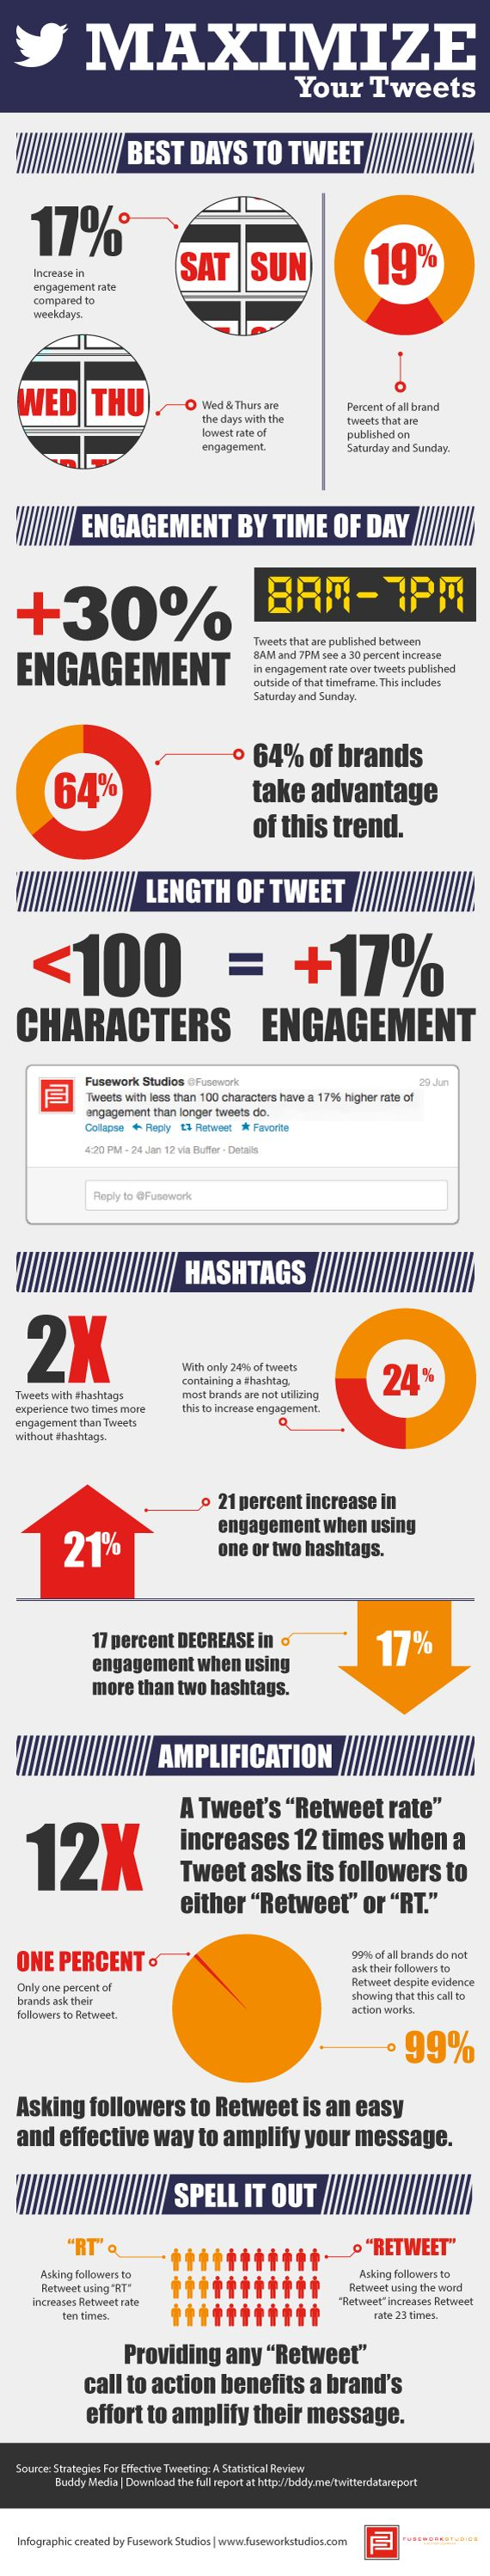 Dear brands, maximize your tweets v/ @Alexi Tauzin: Business Tips, Tweets Infographic, Marketing, Social Media, Maximum, Twitter Infographic, Media Infographic, Socialmedia, Medium